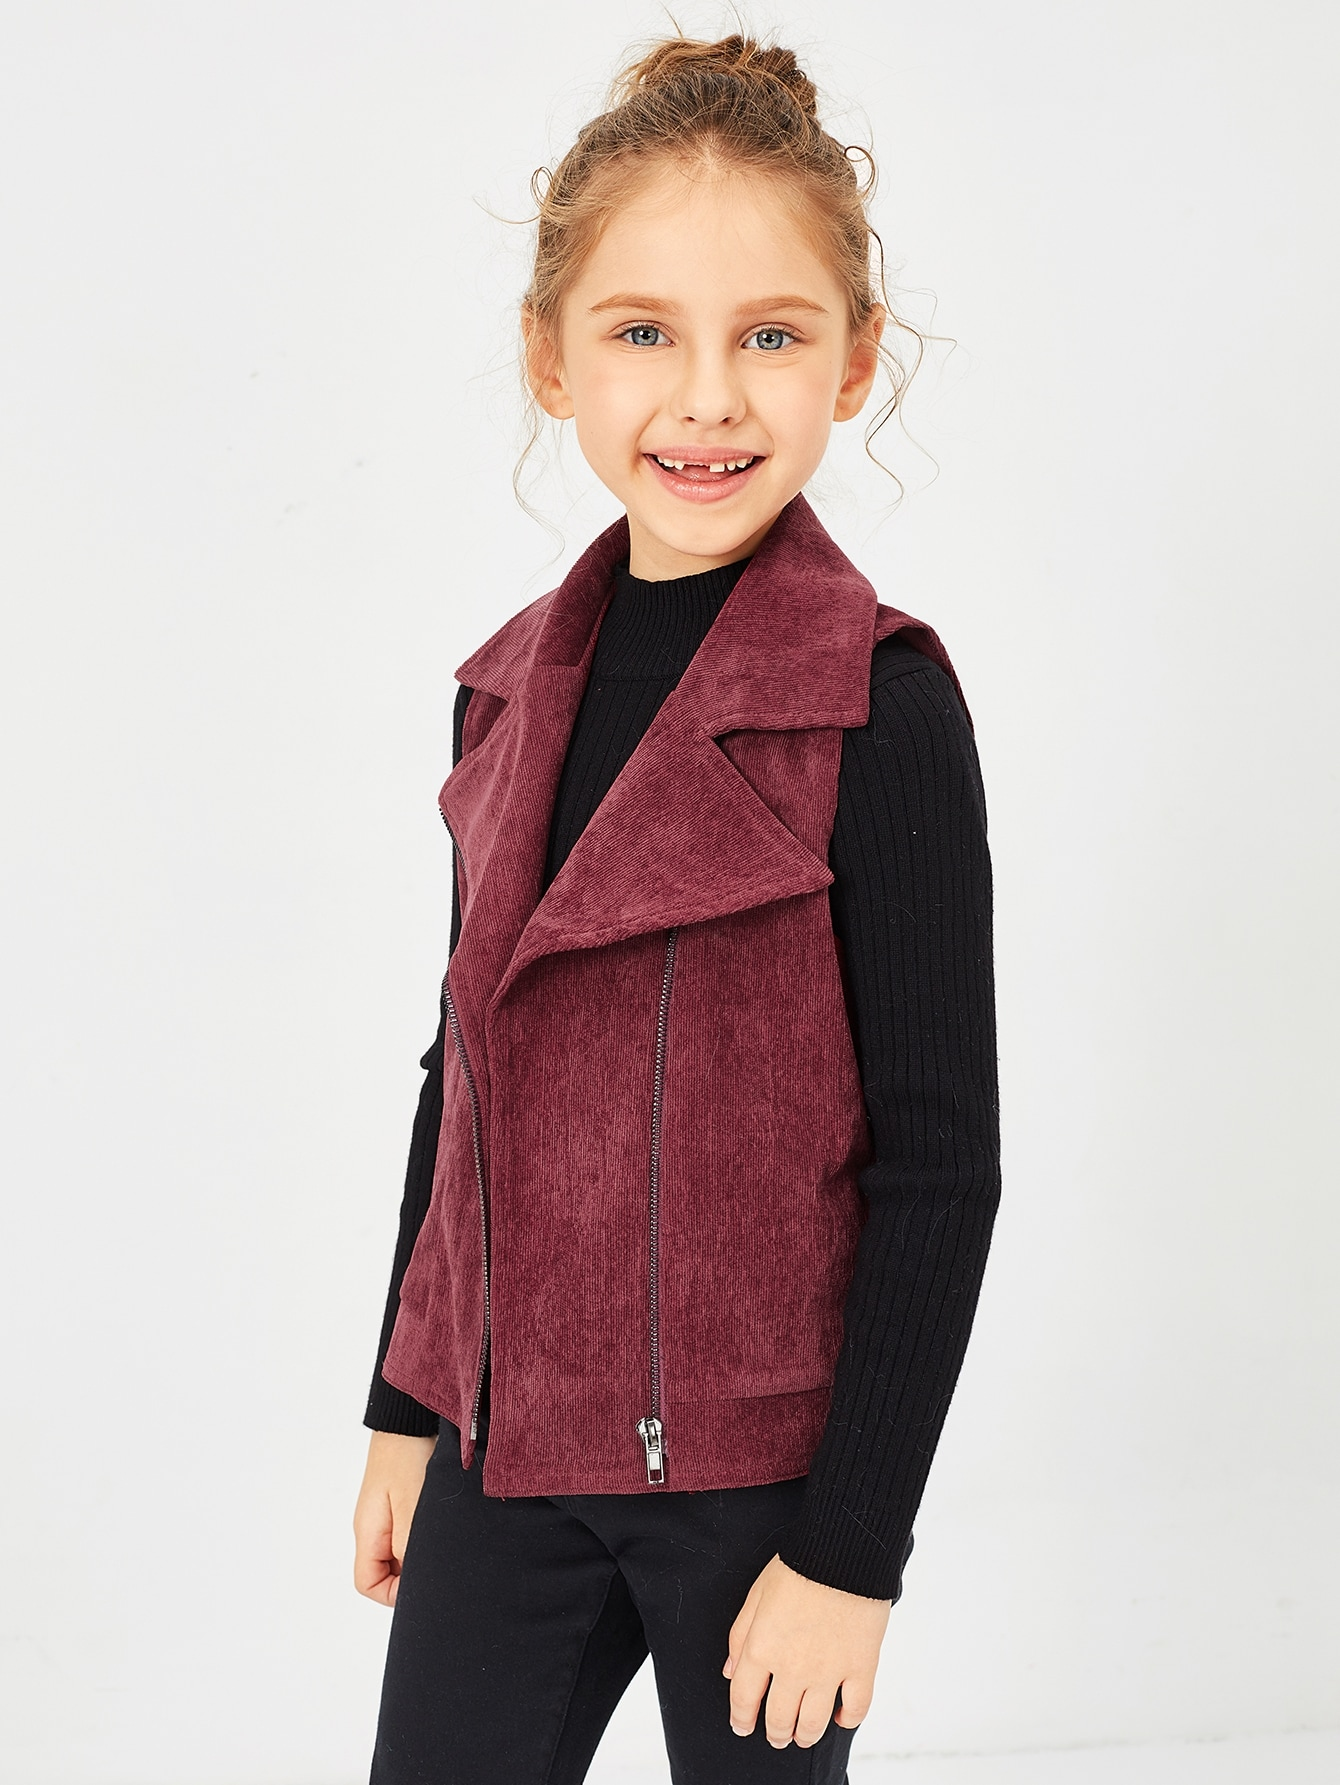 Girls Notch Collar Zip Up Corduroy Vest Girls Notch Collar Zip Up Corduroy Vest